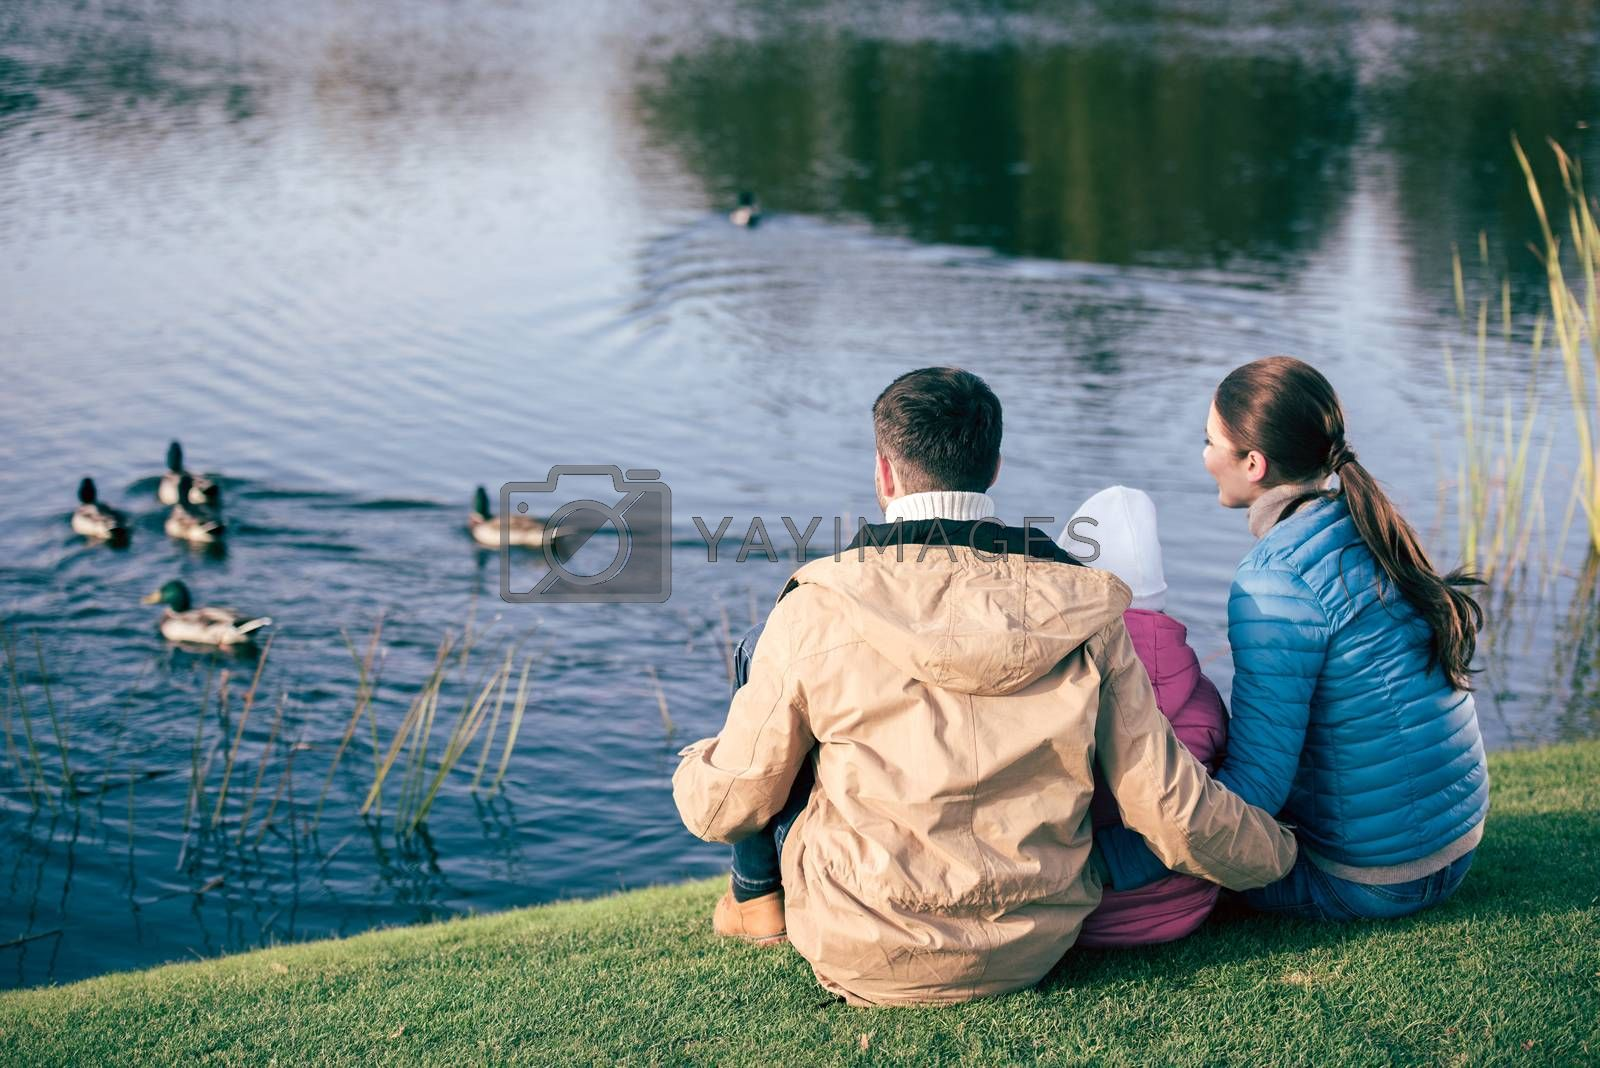 Family looking at lake with ducks by LightFieldStudios